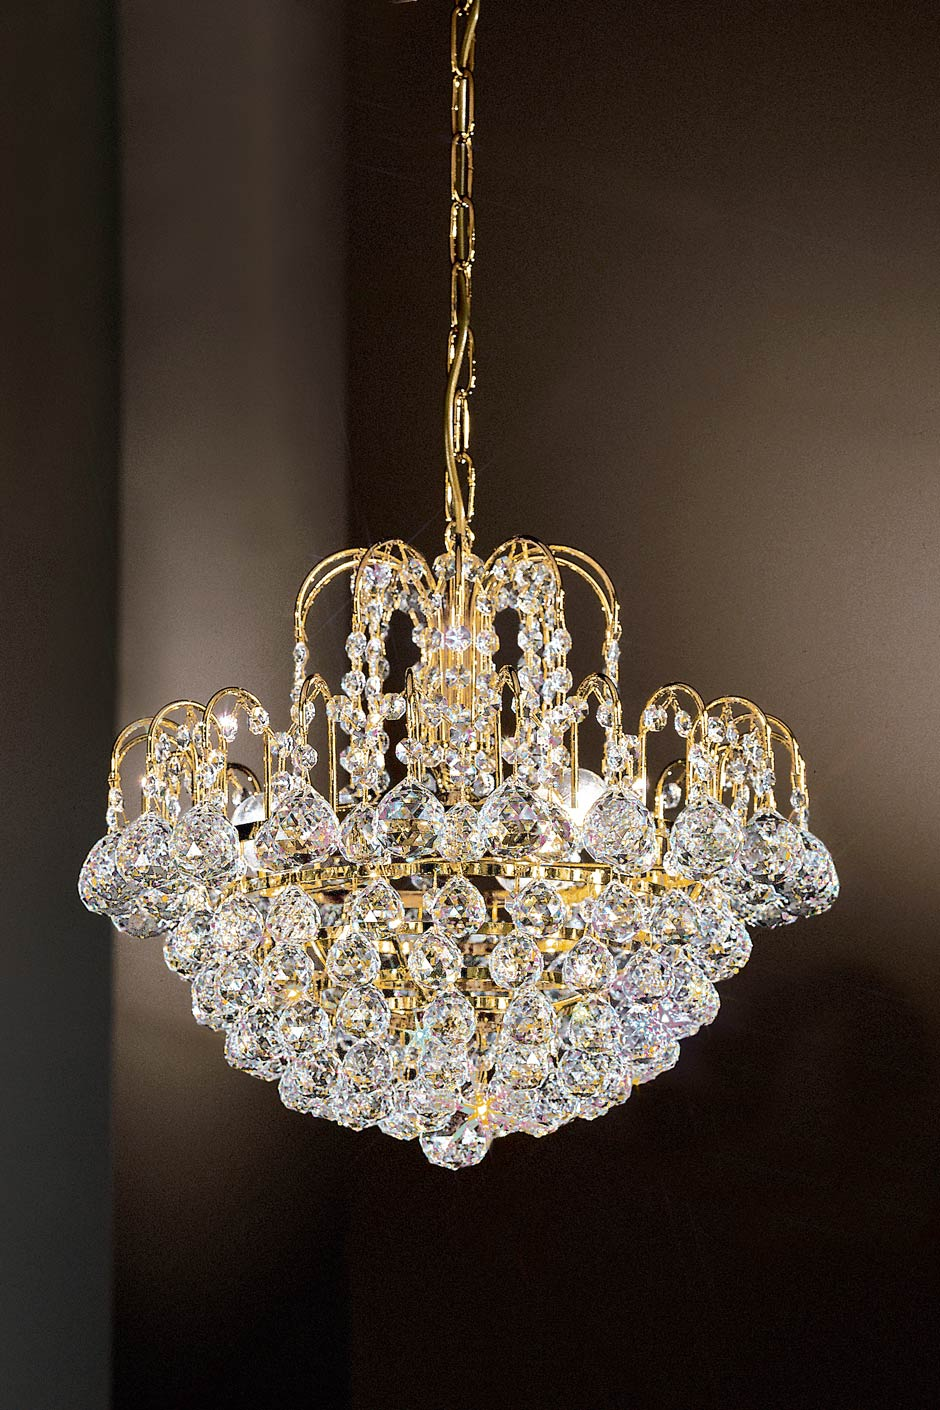 Crystal waterfall chandelier masiero murano and crystal crystal waterfall chandelier masiero aloadofball Gallery